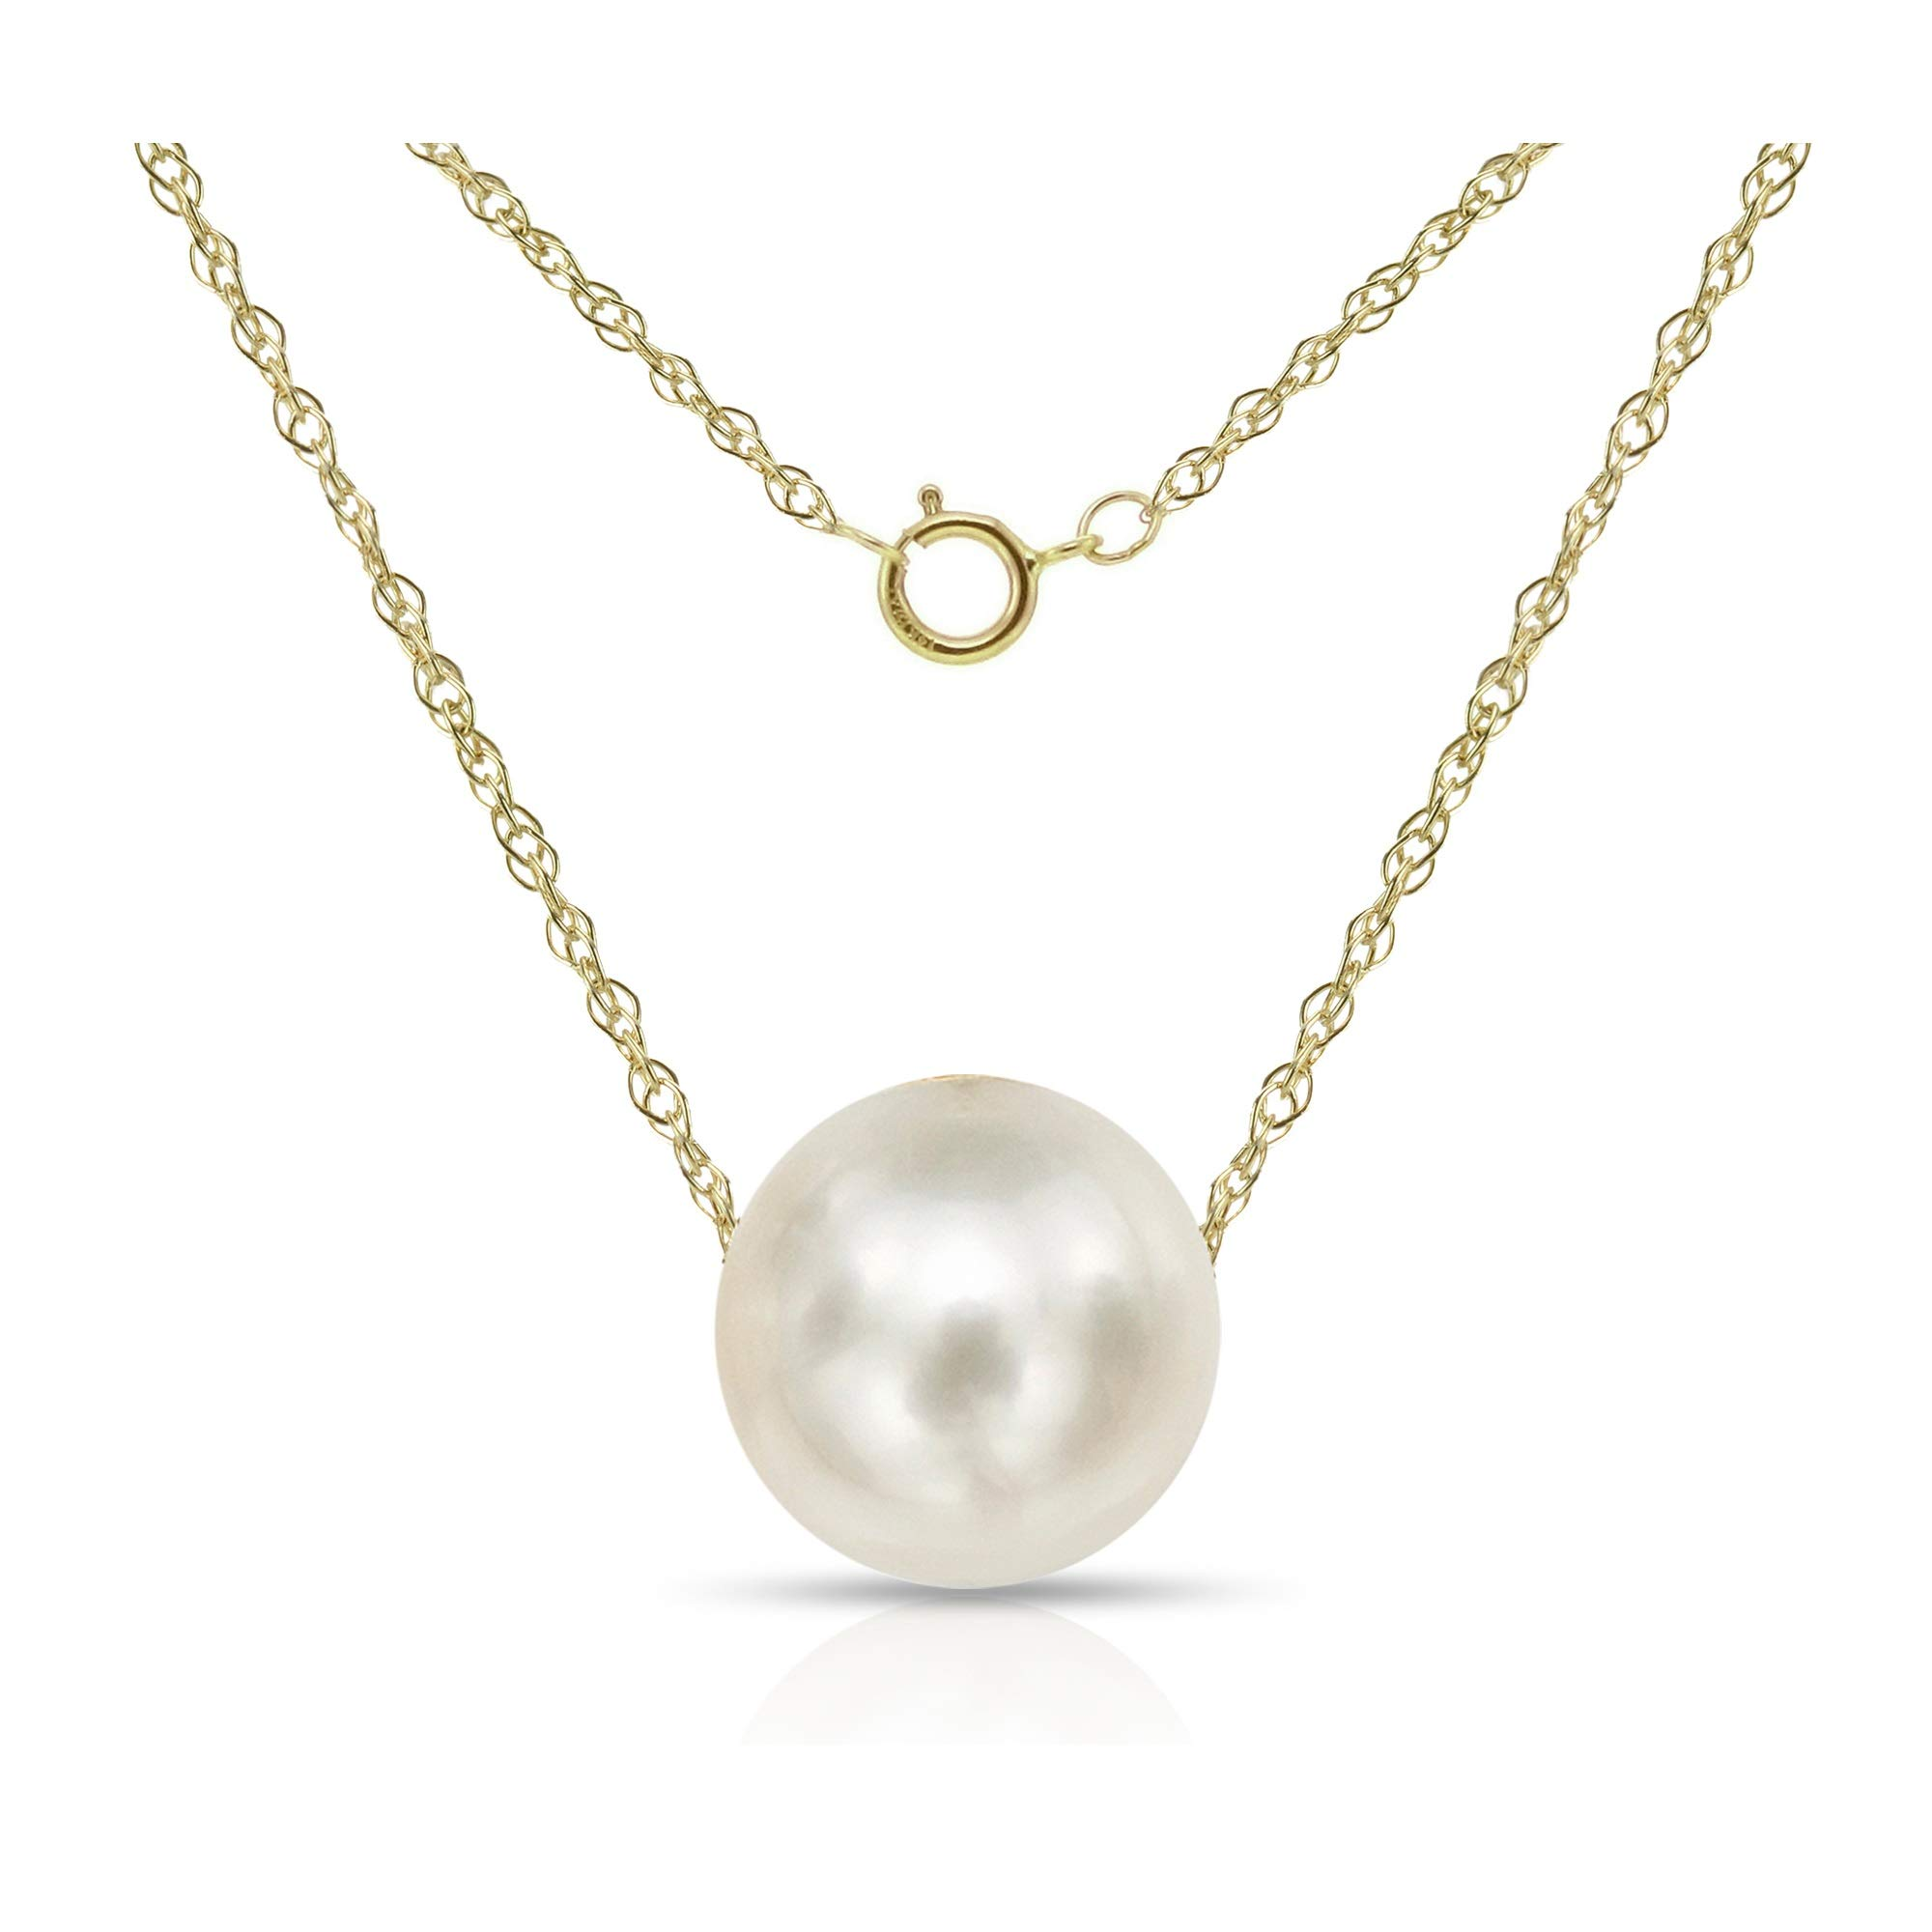 """14K Gold Chain Necklace with Single Floating White Freshwater Cultured Pearl Pendant, 18"""" (Choice of Pearl Sizes and Gold Colors) Valentines Day Gifts"""